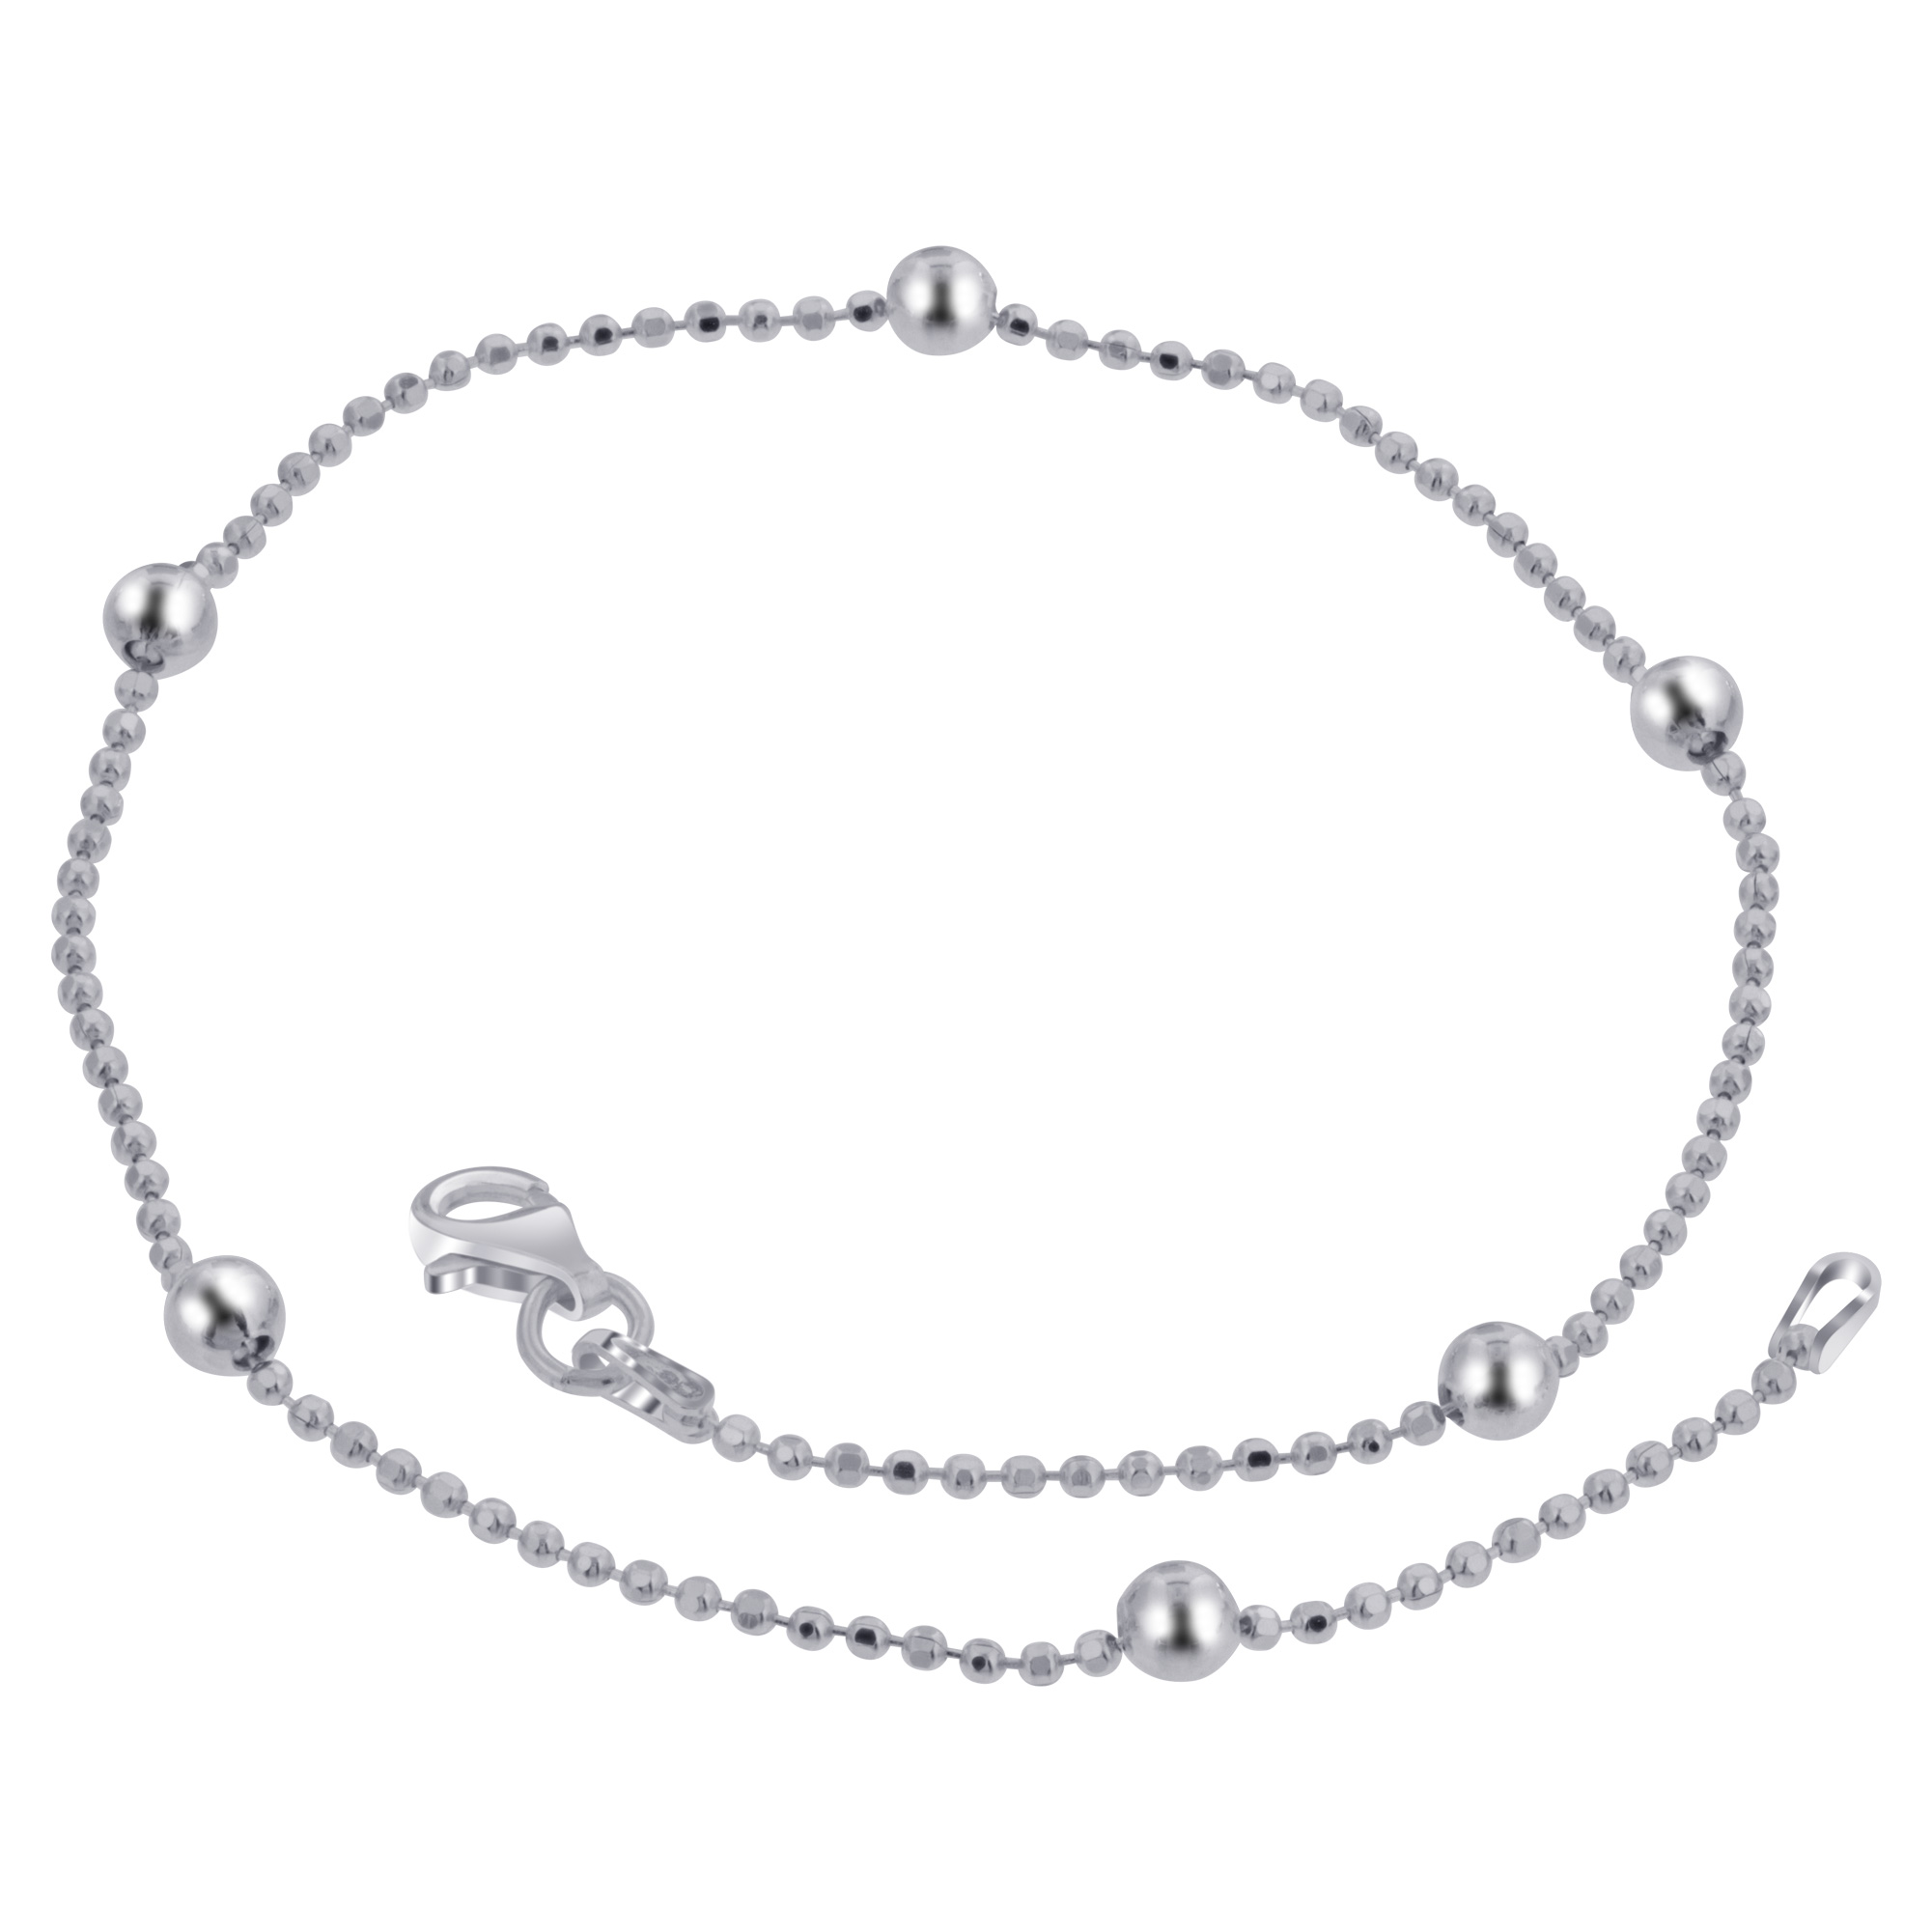 925 Sterling Silver 3mm Chain Anklet Ankle Bracelet with Lobster Clasp #BDA030